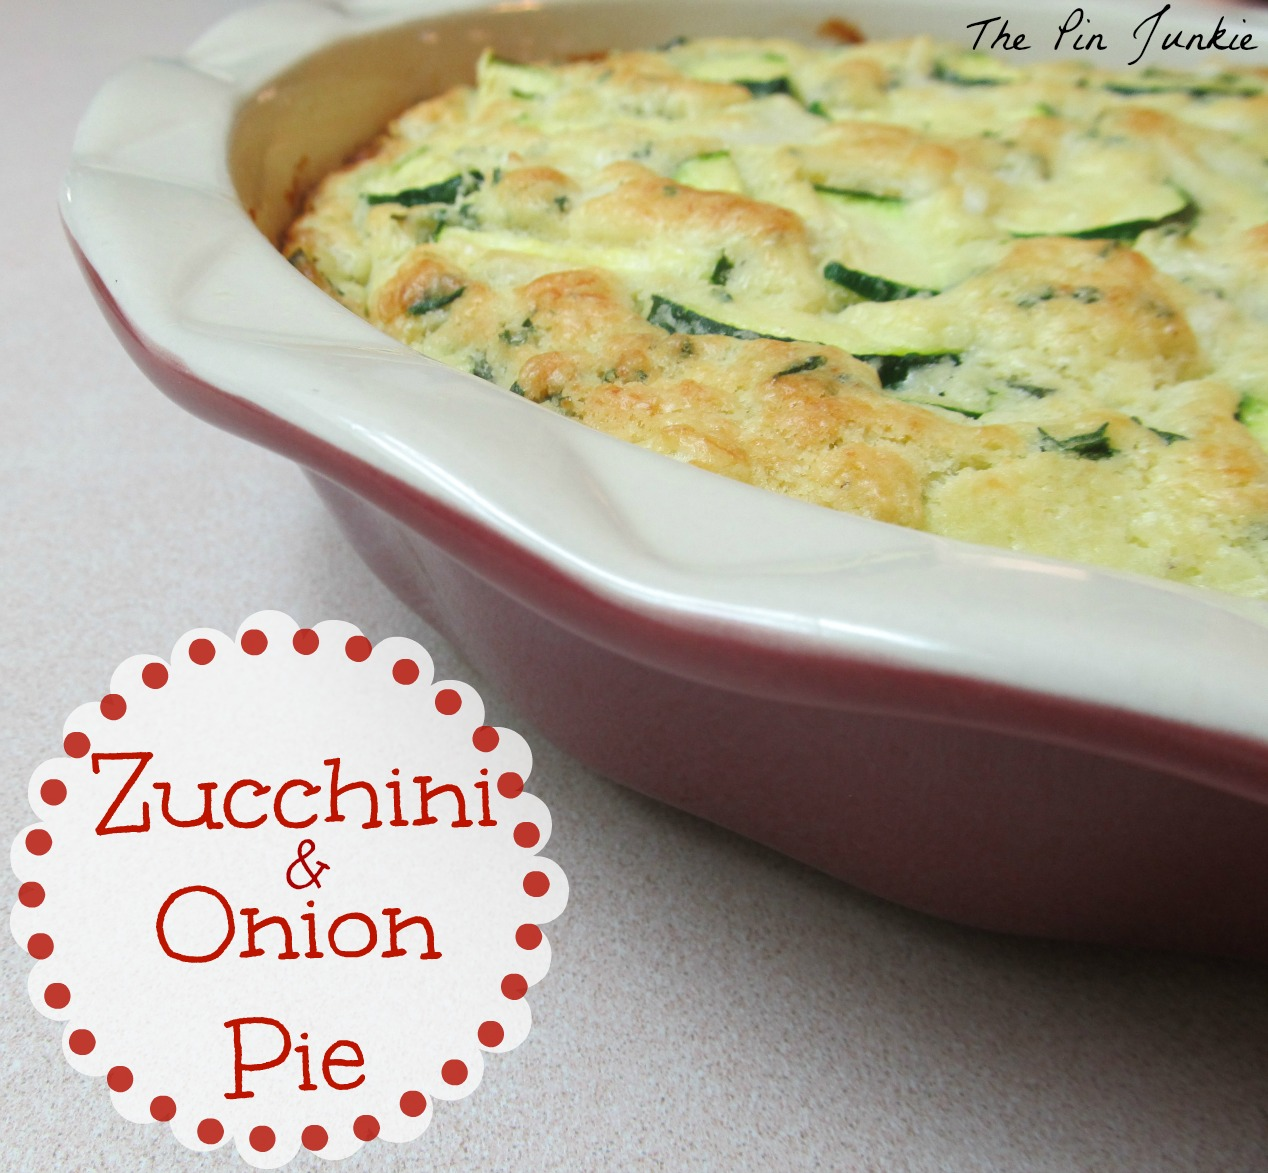 The Pin Junkie: Zucchini and Onion Pie